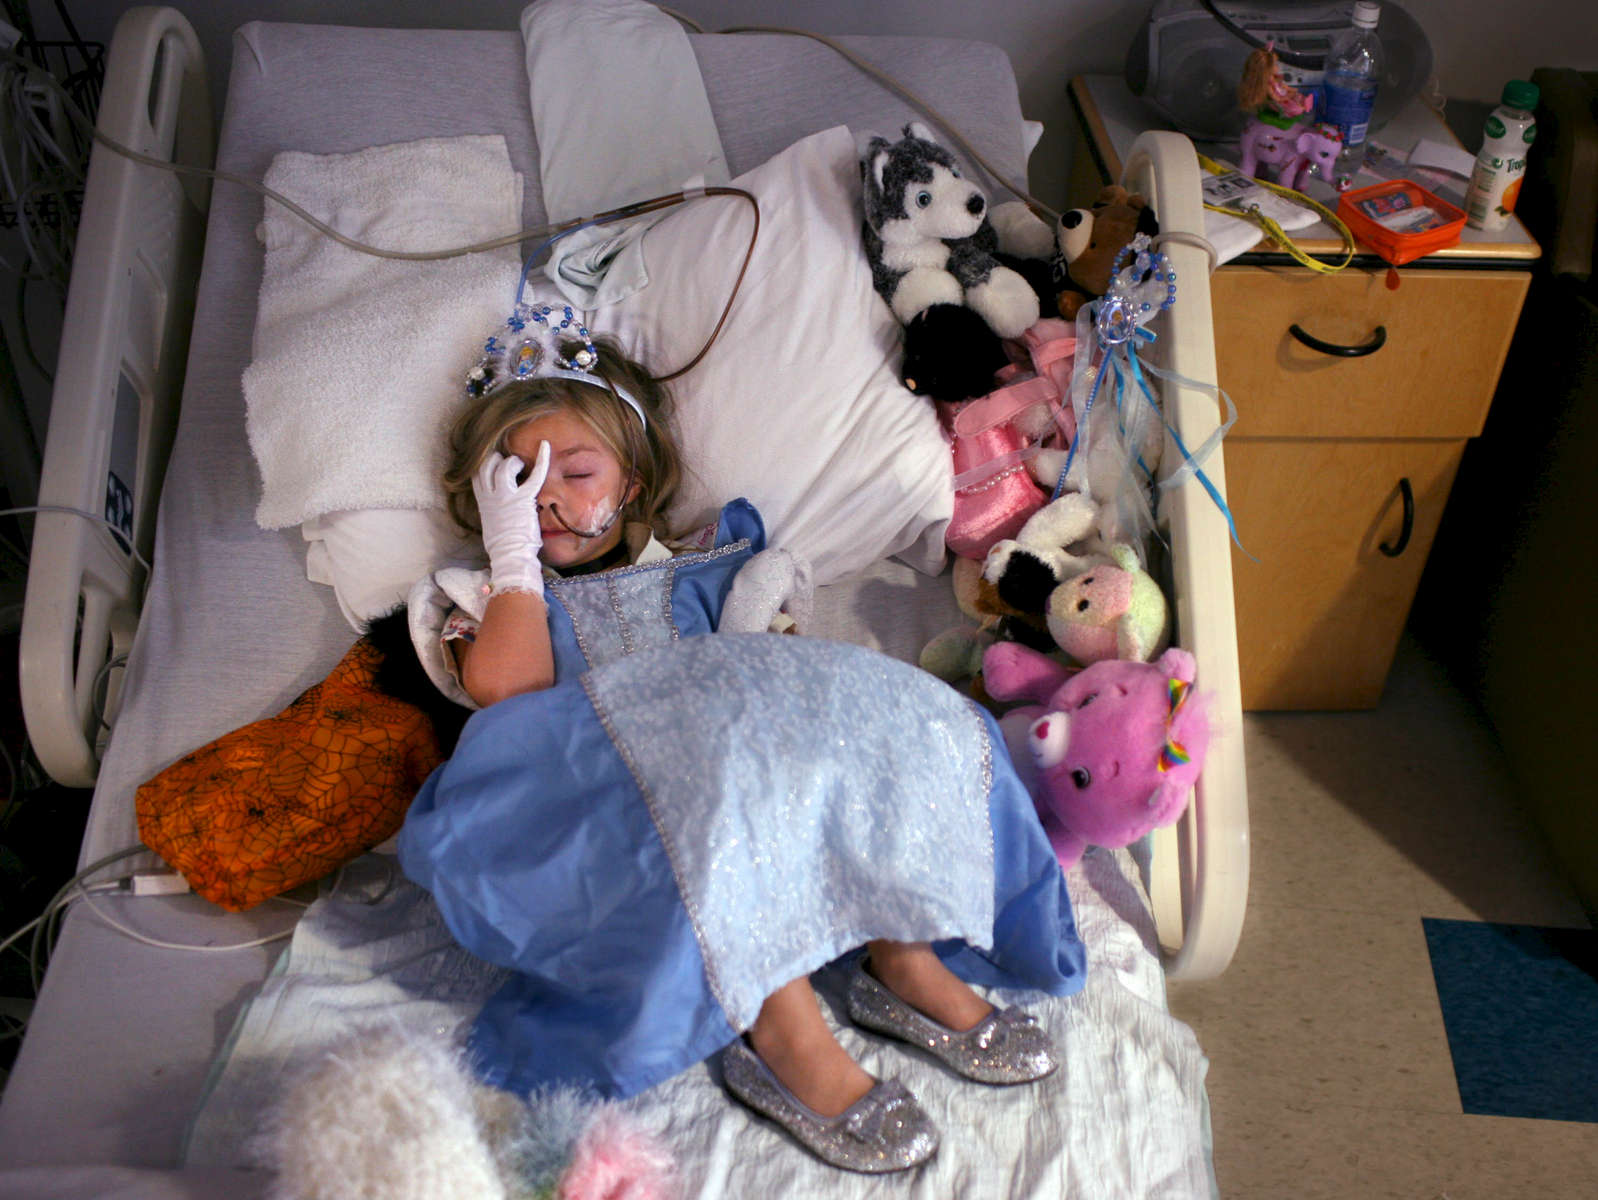 Lindsey Reelick, 4, rests while dressed as Cinderella at Connecticut Children's Medical Center . Reelick and others children in the hospital were recipients of the {quote}Reverse Trick or Treating{quote} where staff  members came by and delivered goodies to the children. {quote}All the doctors and nurses have been really fantastic,{quote} said Dana Reelick, her mother. {quote}They have made it fun for her - they've made it a special day.{quote}